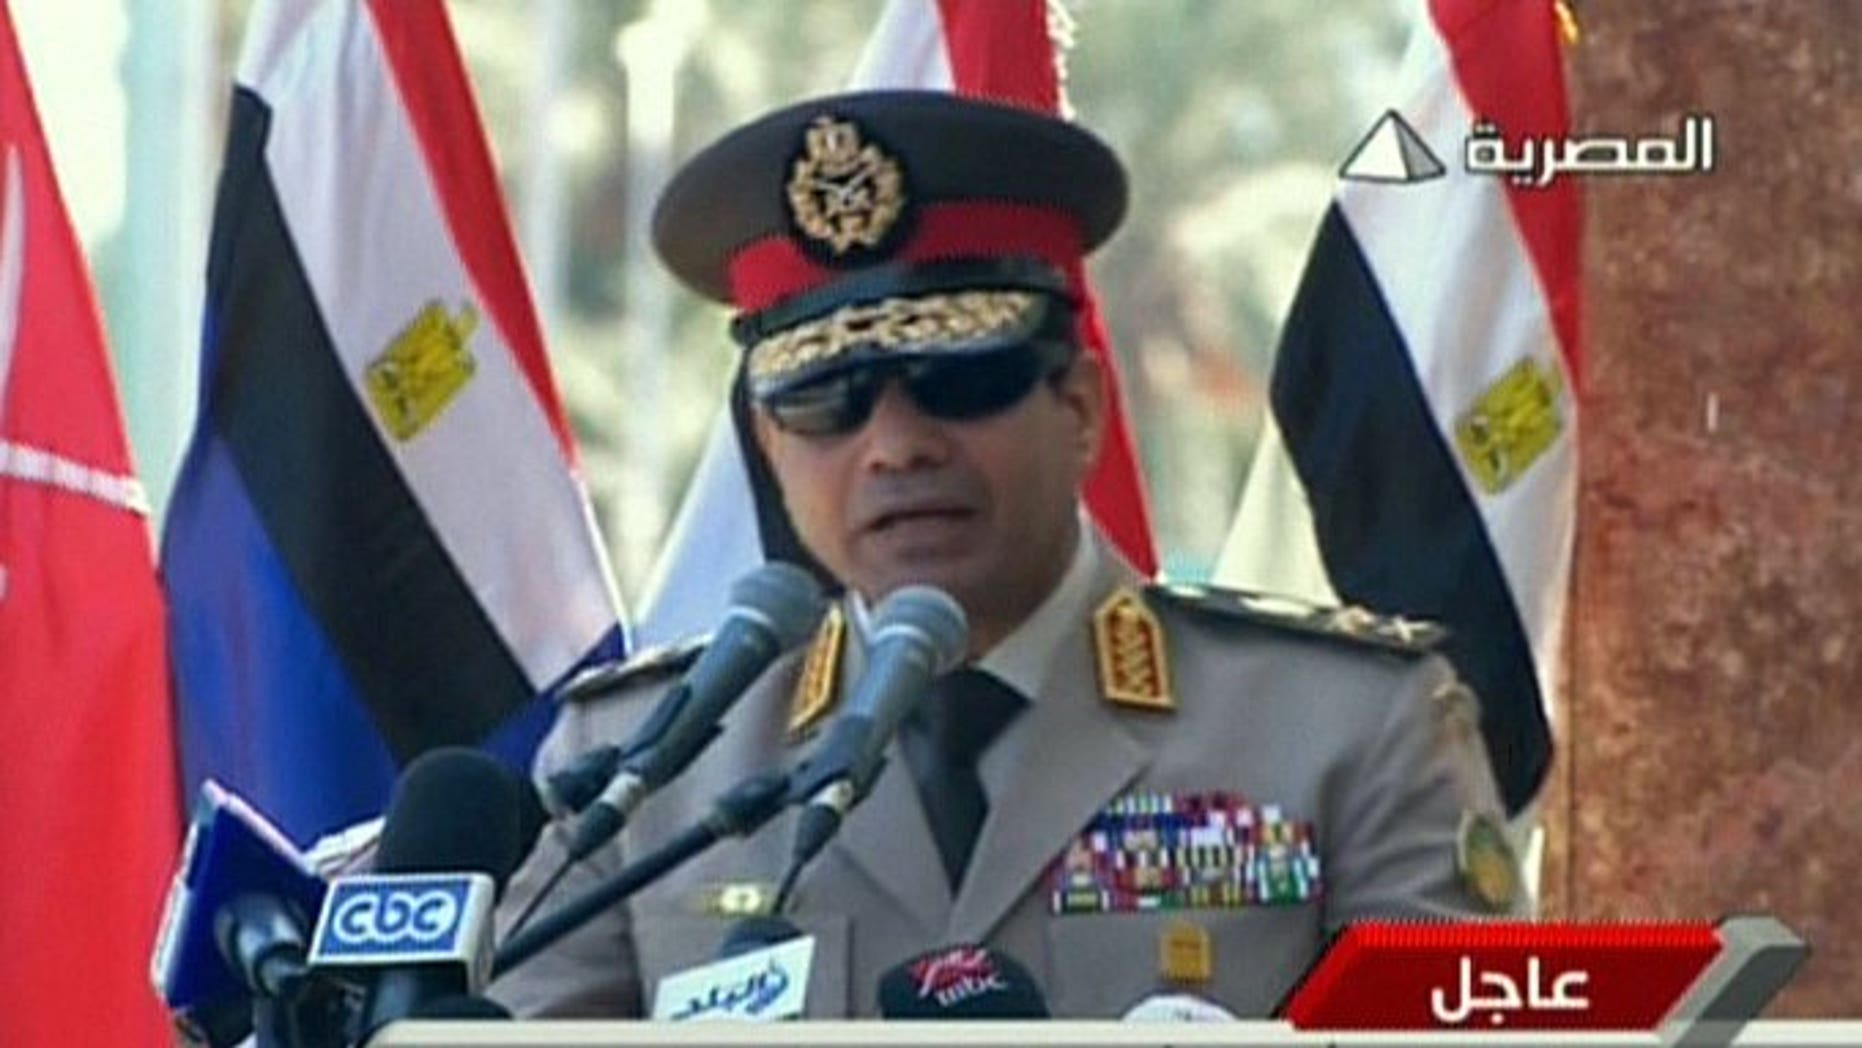 """An image grab taken from Egyptian state TV shows Egypt's army chief General Abdel Fattah al-Sisi giving a live broadcast calling for public rallies to give him a mandate to fight """"terrorism and violence"""". Egypt's army chief vowed Sunday to stand firm in the face of violence by Islamists, in his first remarks since a deadly crackdown on supporters of ousted president Mohamed Morsi."""